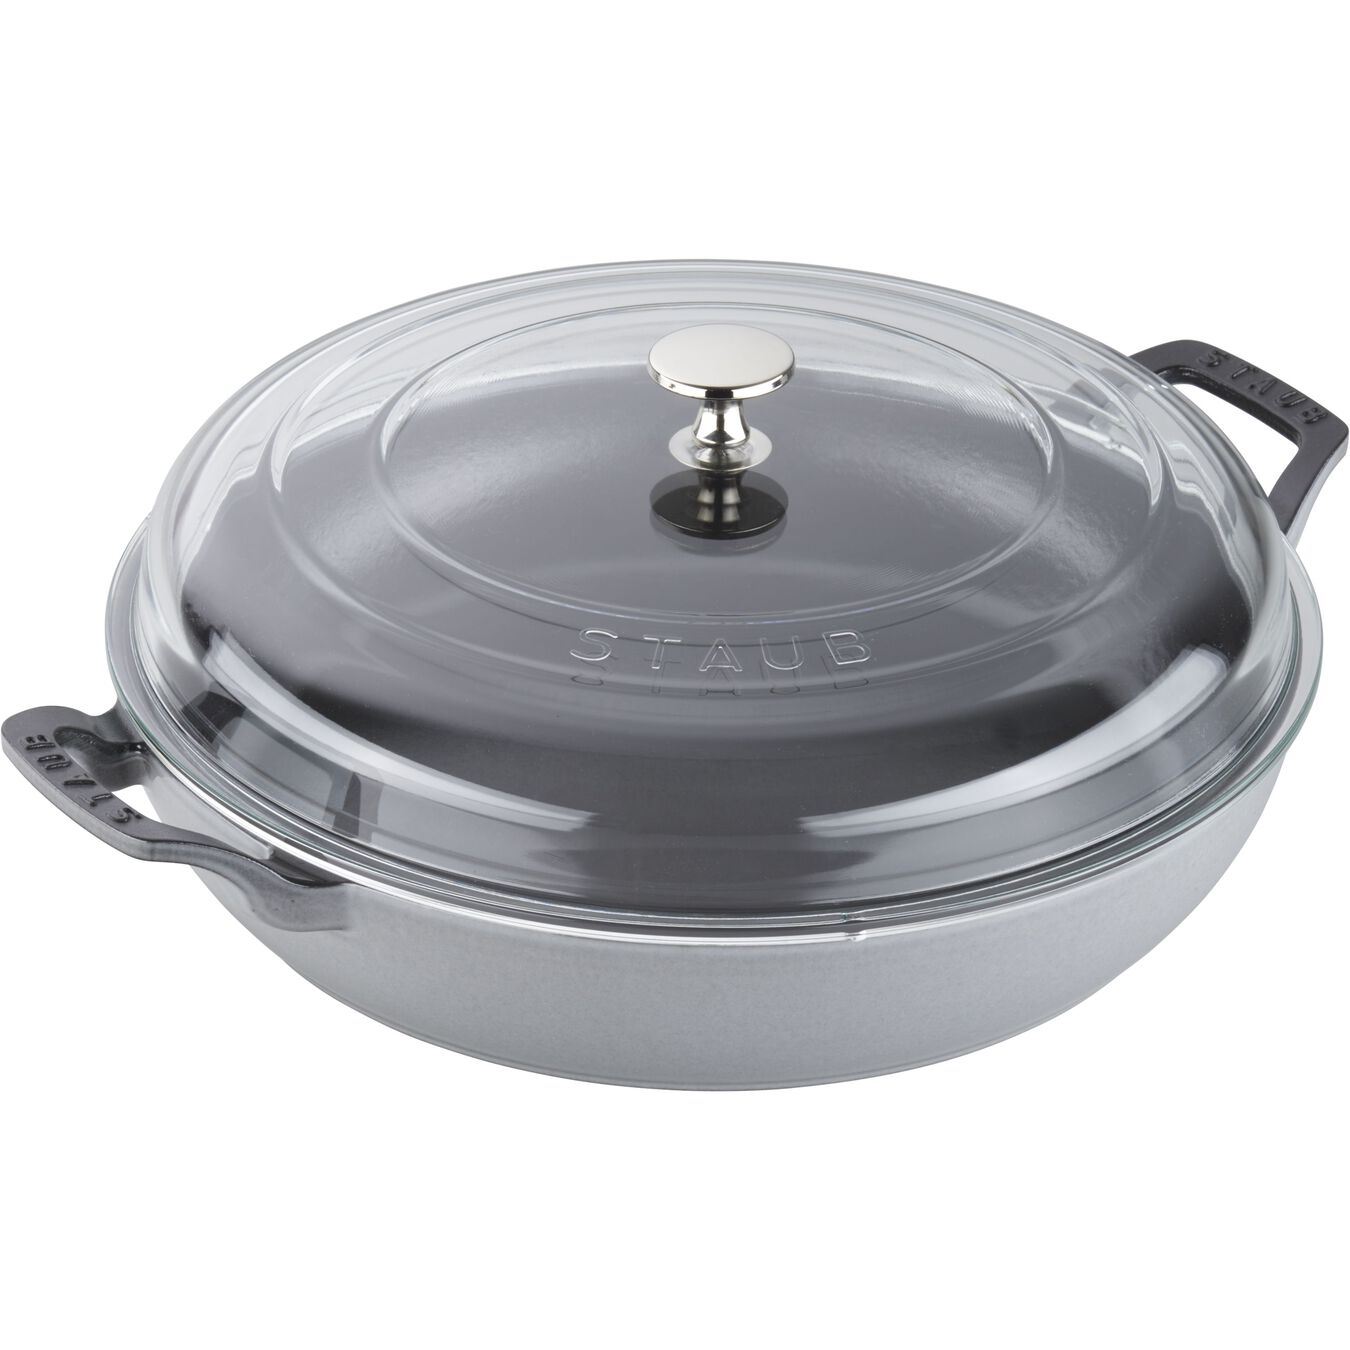 12-inch, Braiser with Glass Lid, graphite grey,,large 3